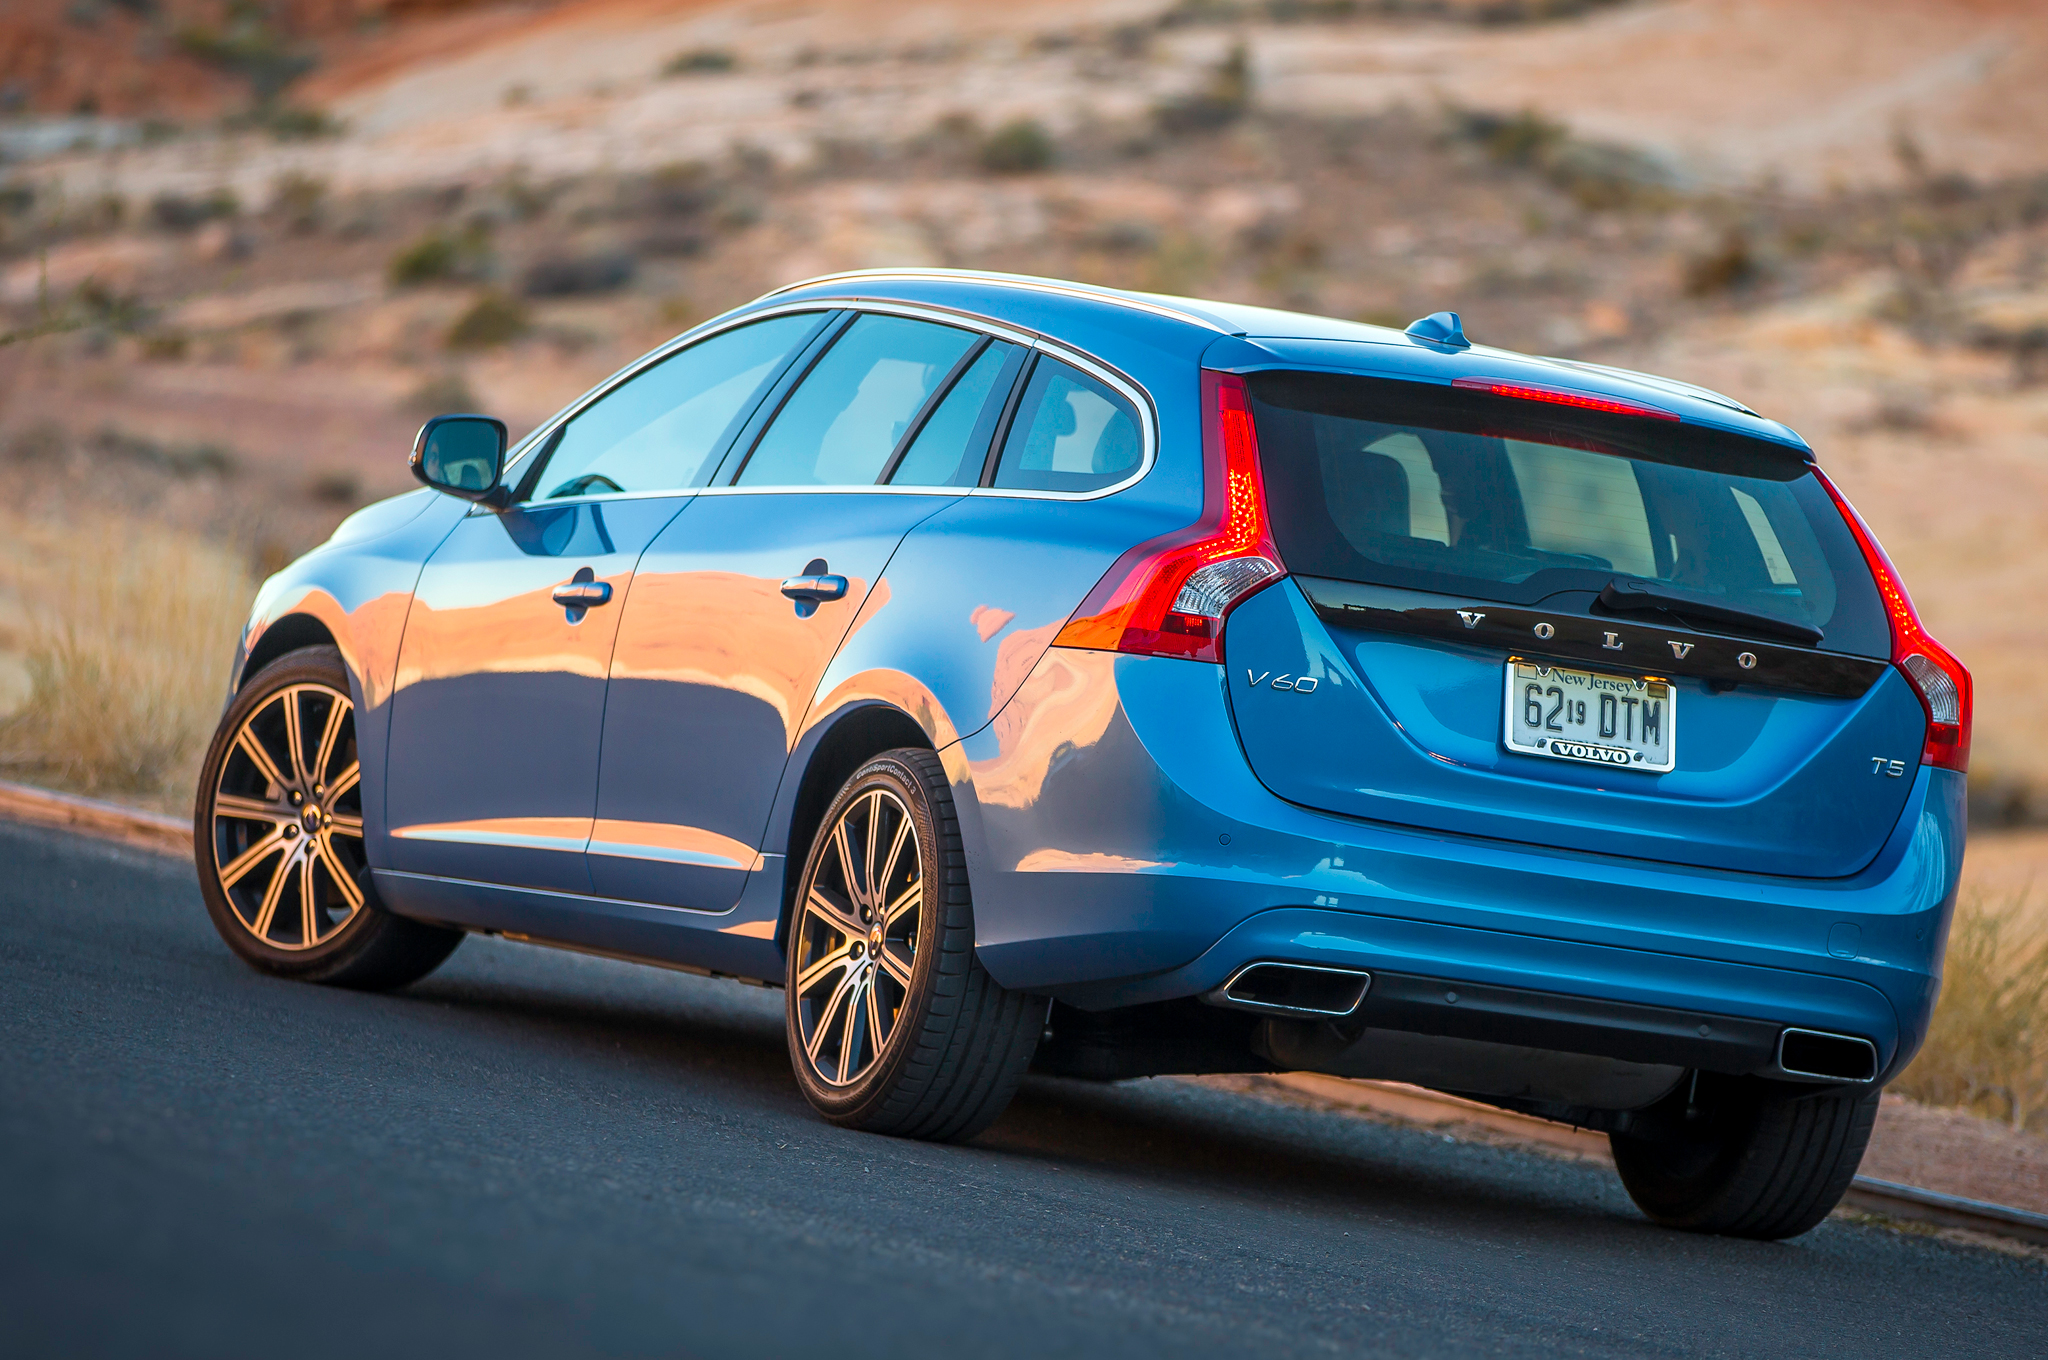 2015 Volvo V60 Rear Side Design Profile (Photo 37 of 38)